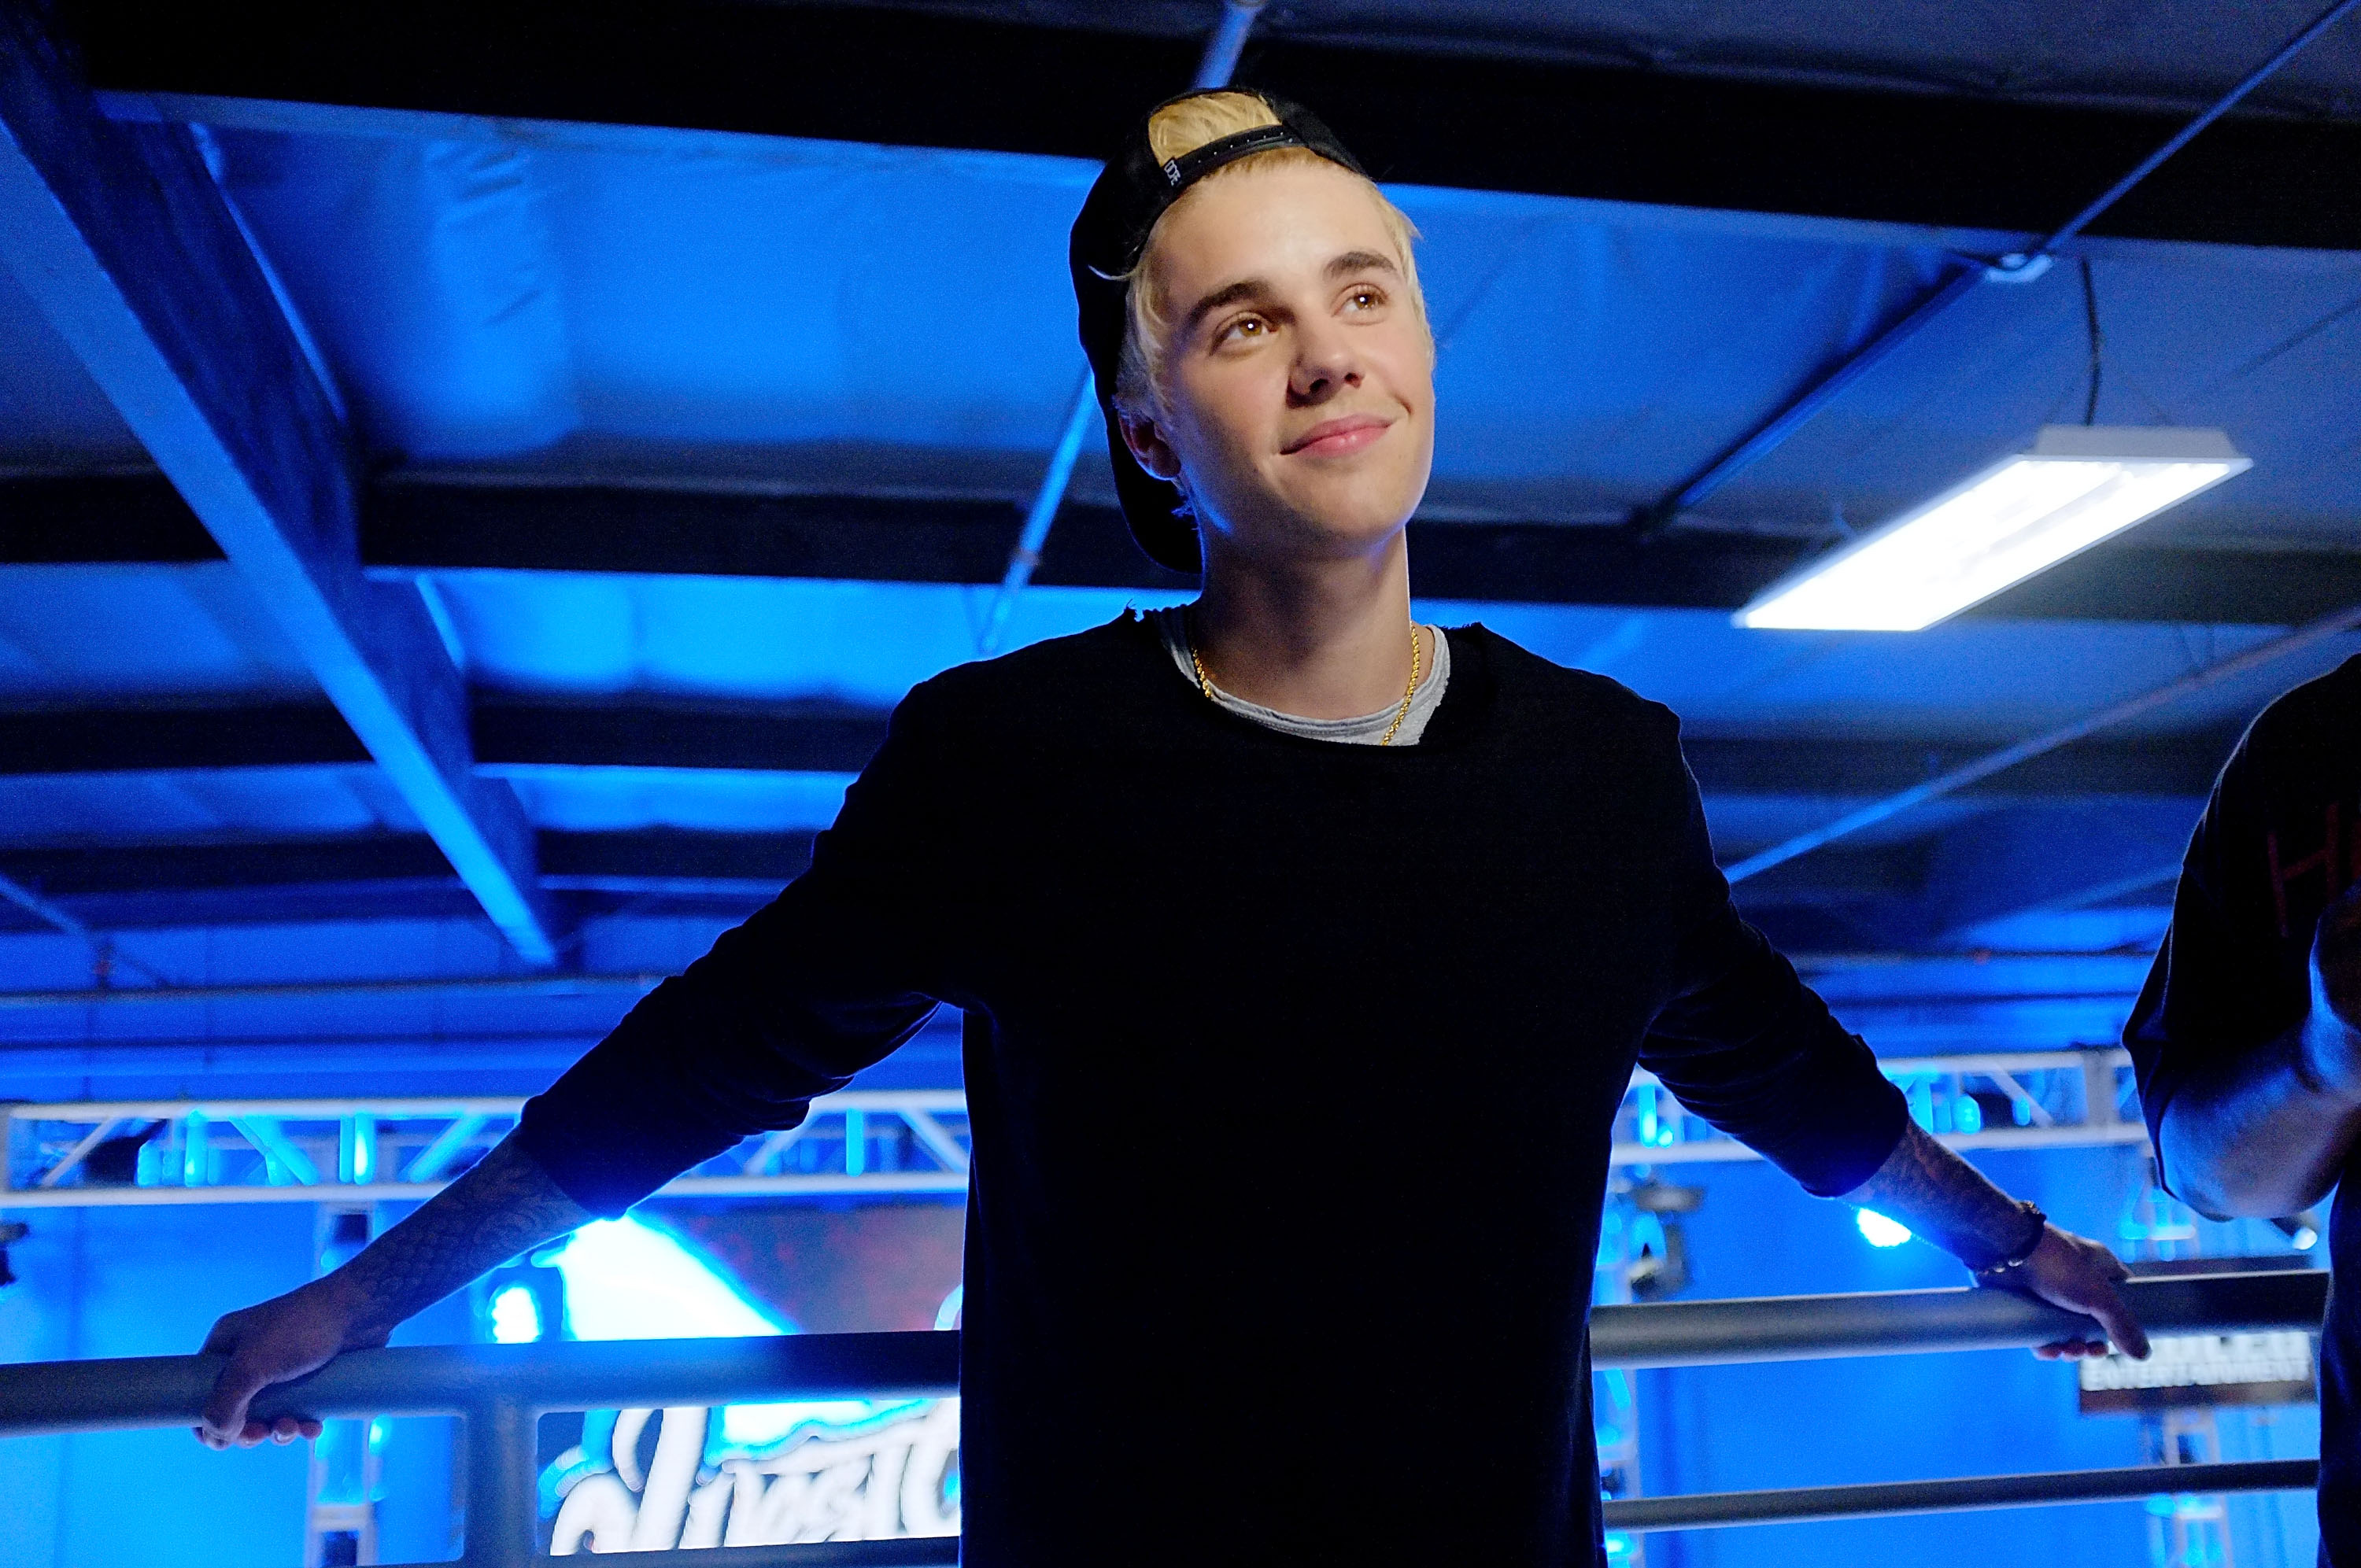 Justin Bieber Apologizes: 'I'm Not Who I Was Pretending to Be'